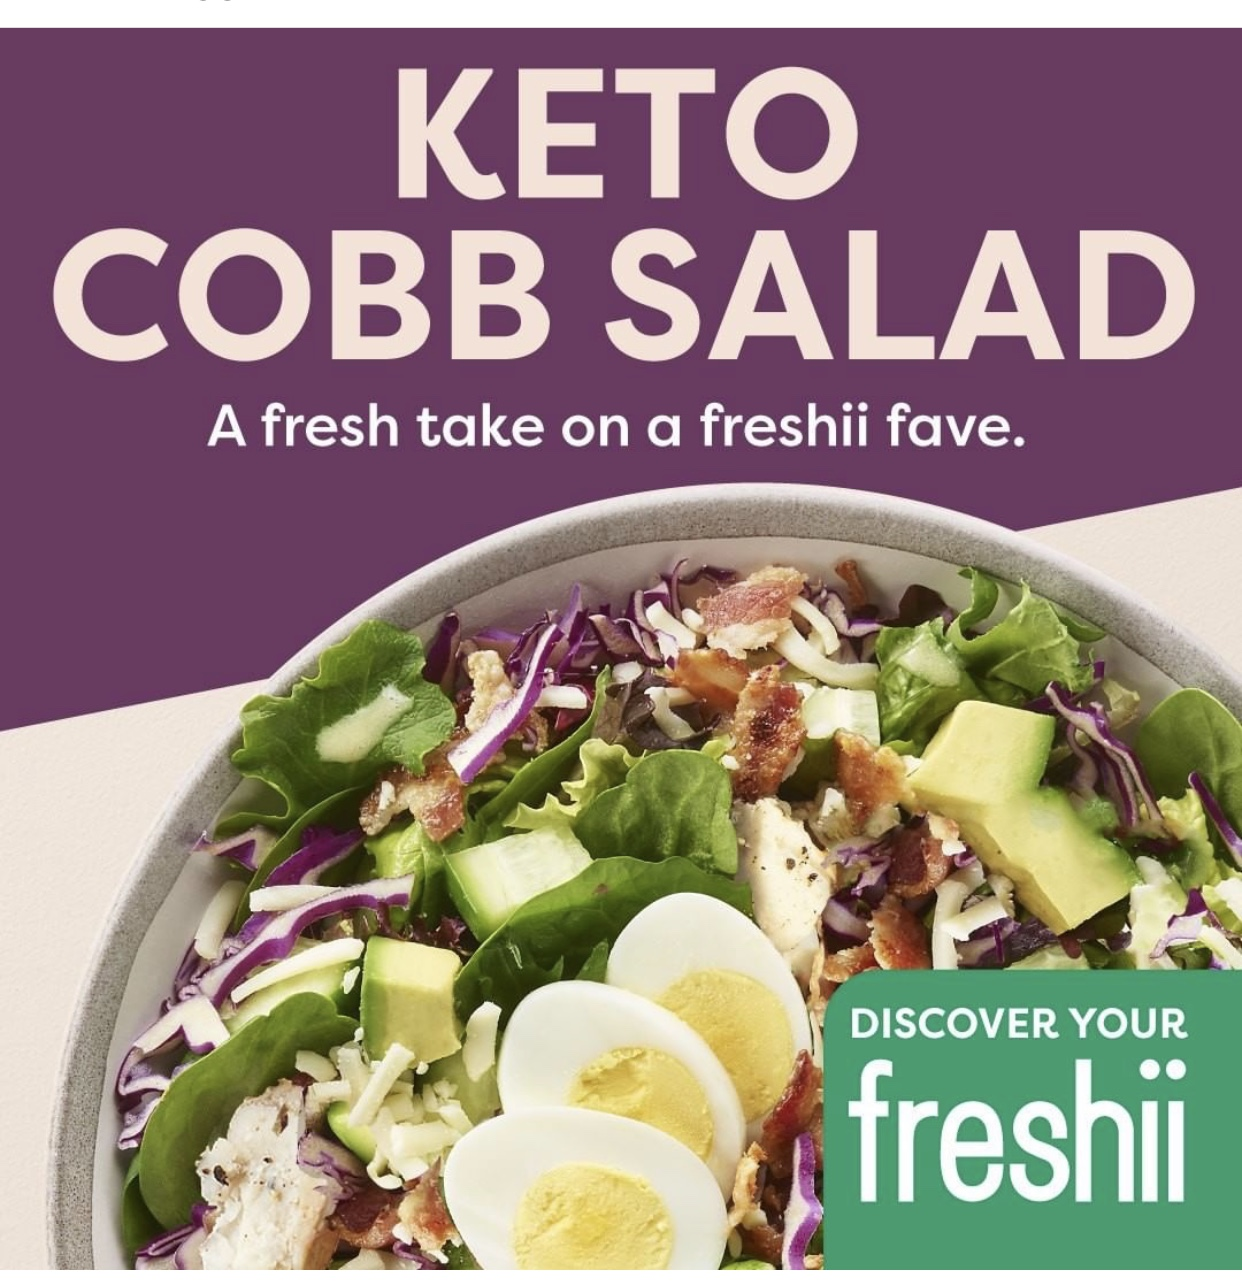 Cravin A Keto Cobb Salad Visit Or Order From Freshii In Middletown Today Tapinto